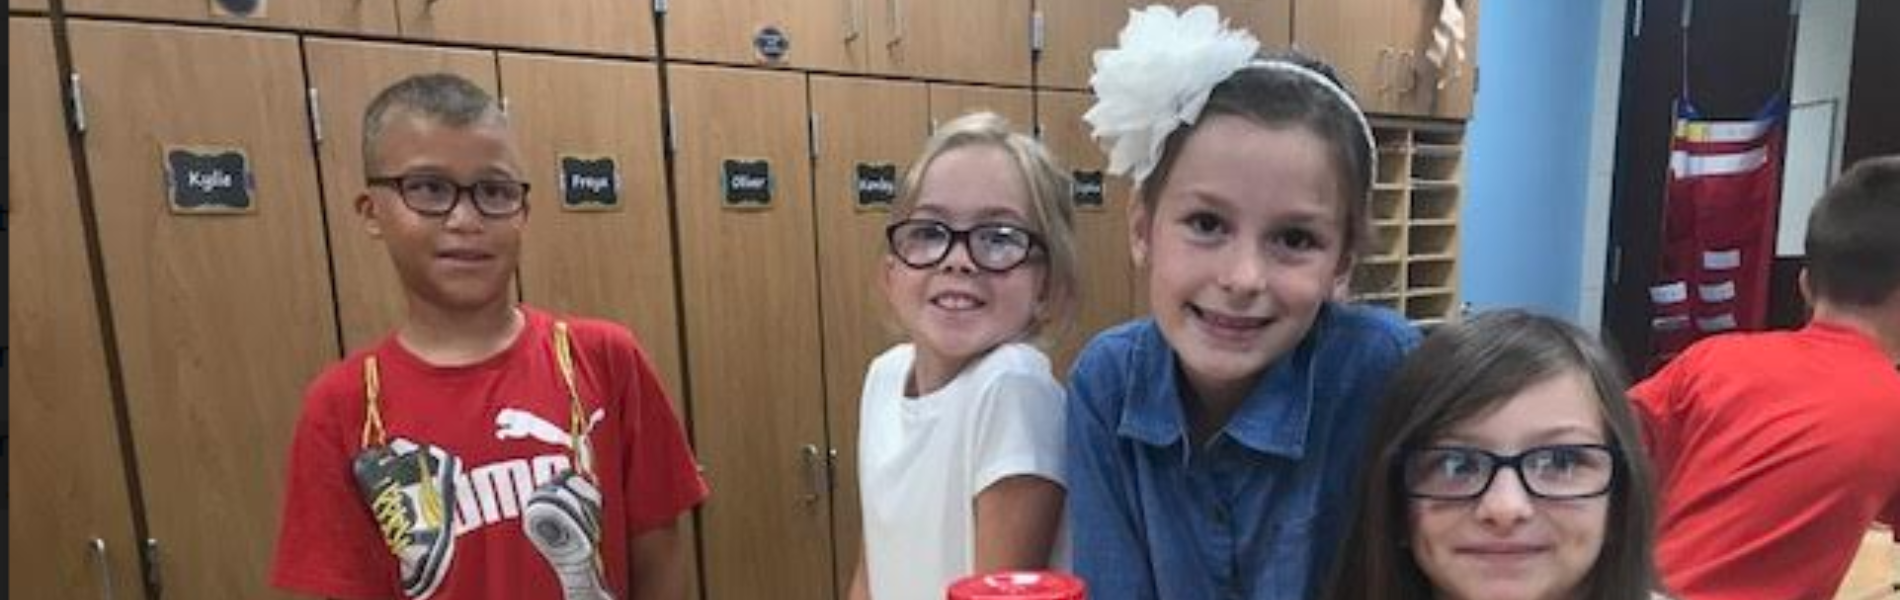 Elementary students are ready for the new school year